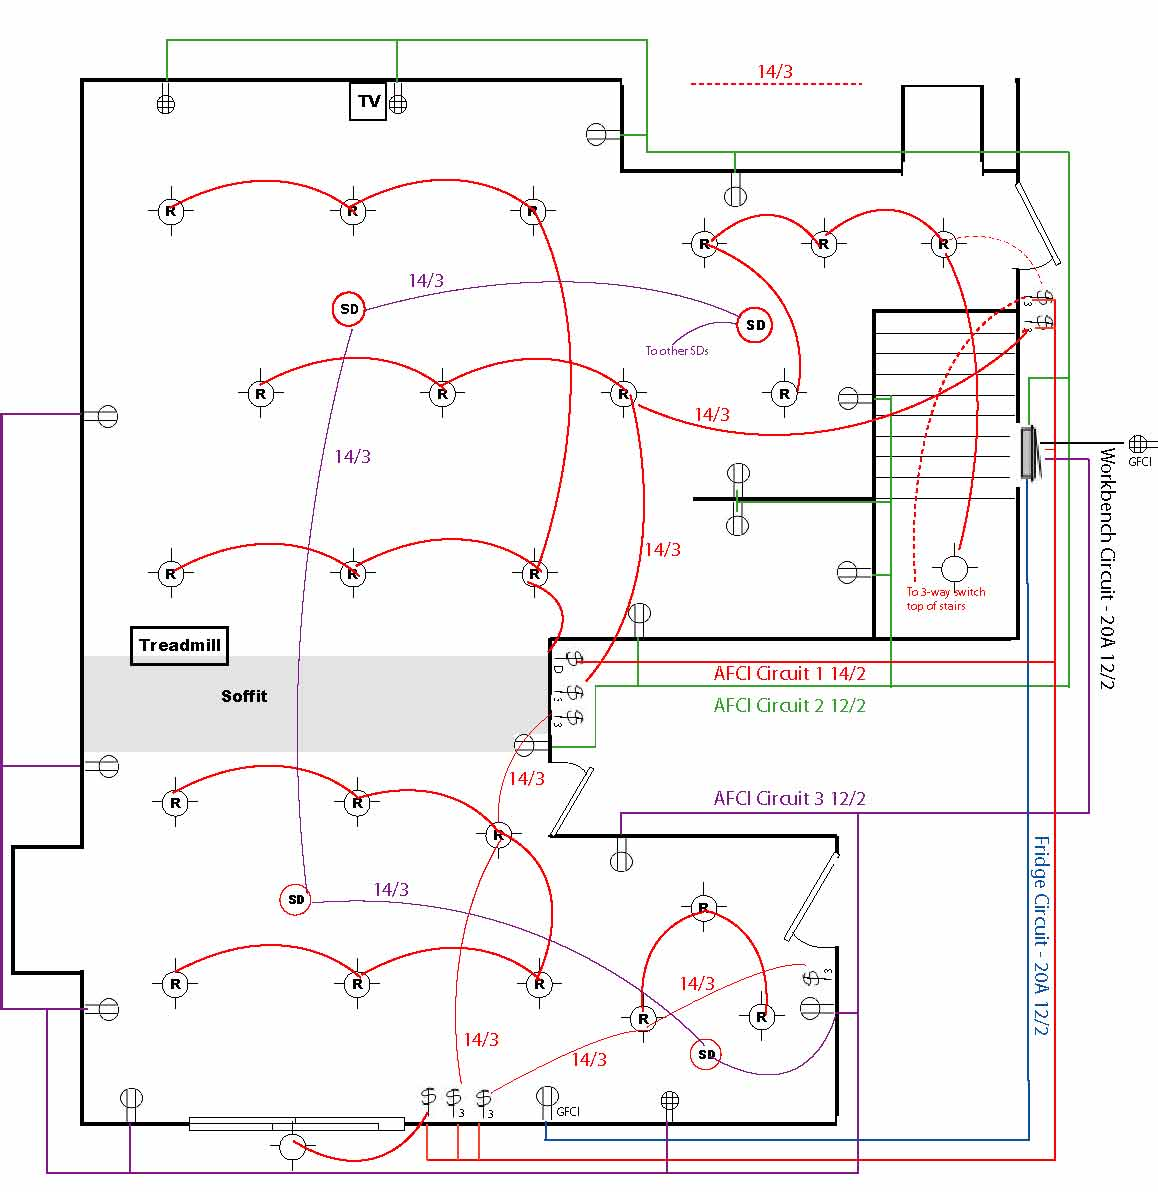 28092d1293391905 basement wiring diagram 60a service 600sf basement_v2?resize=665%2C685 basic home wiring plans and wiring diagrams readingrat net,House Wiring Diagram Ireland